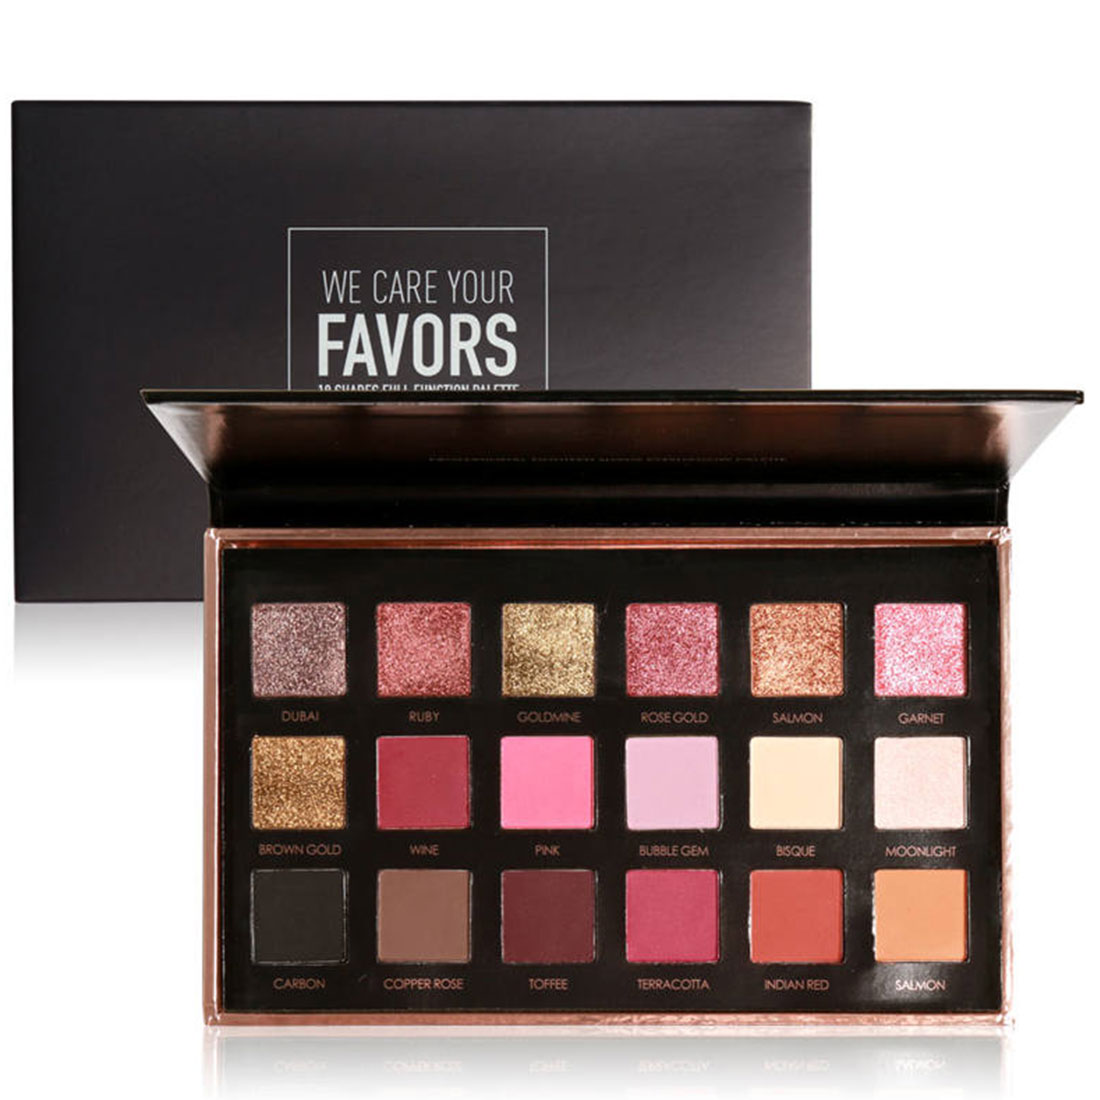 Hot FOCALLURE 18 Colors Eyeshadow Palette Matte Diamond Glitter Matallic Eye Shadow in One Palette Blush Makeup Set for Beauty